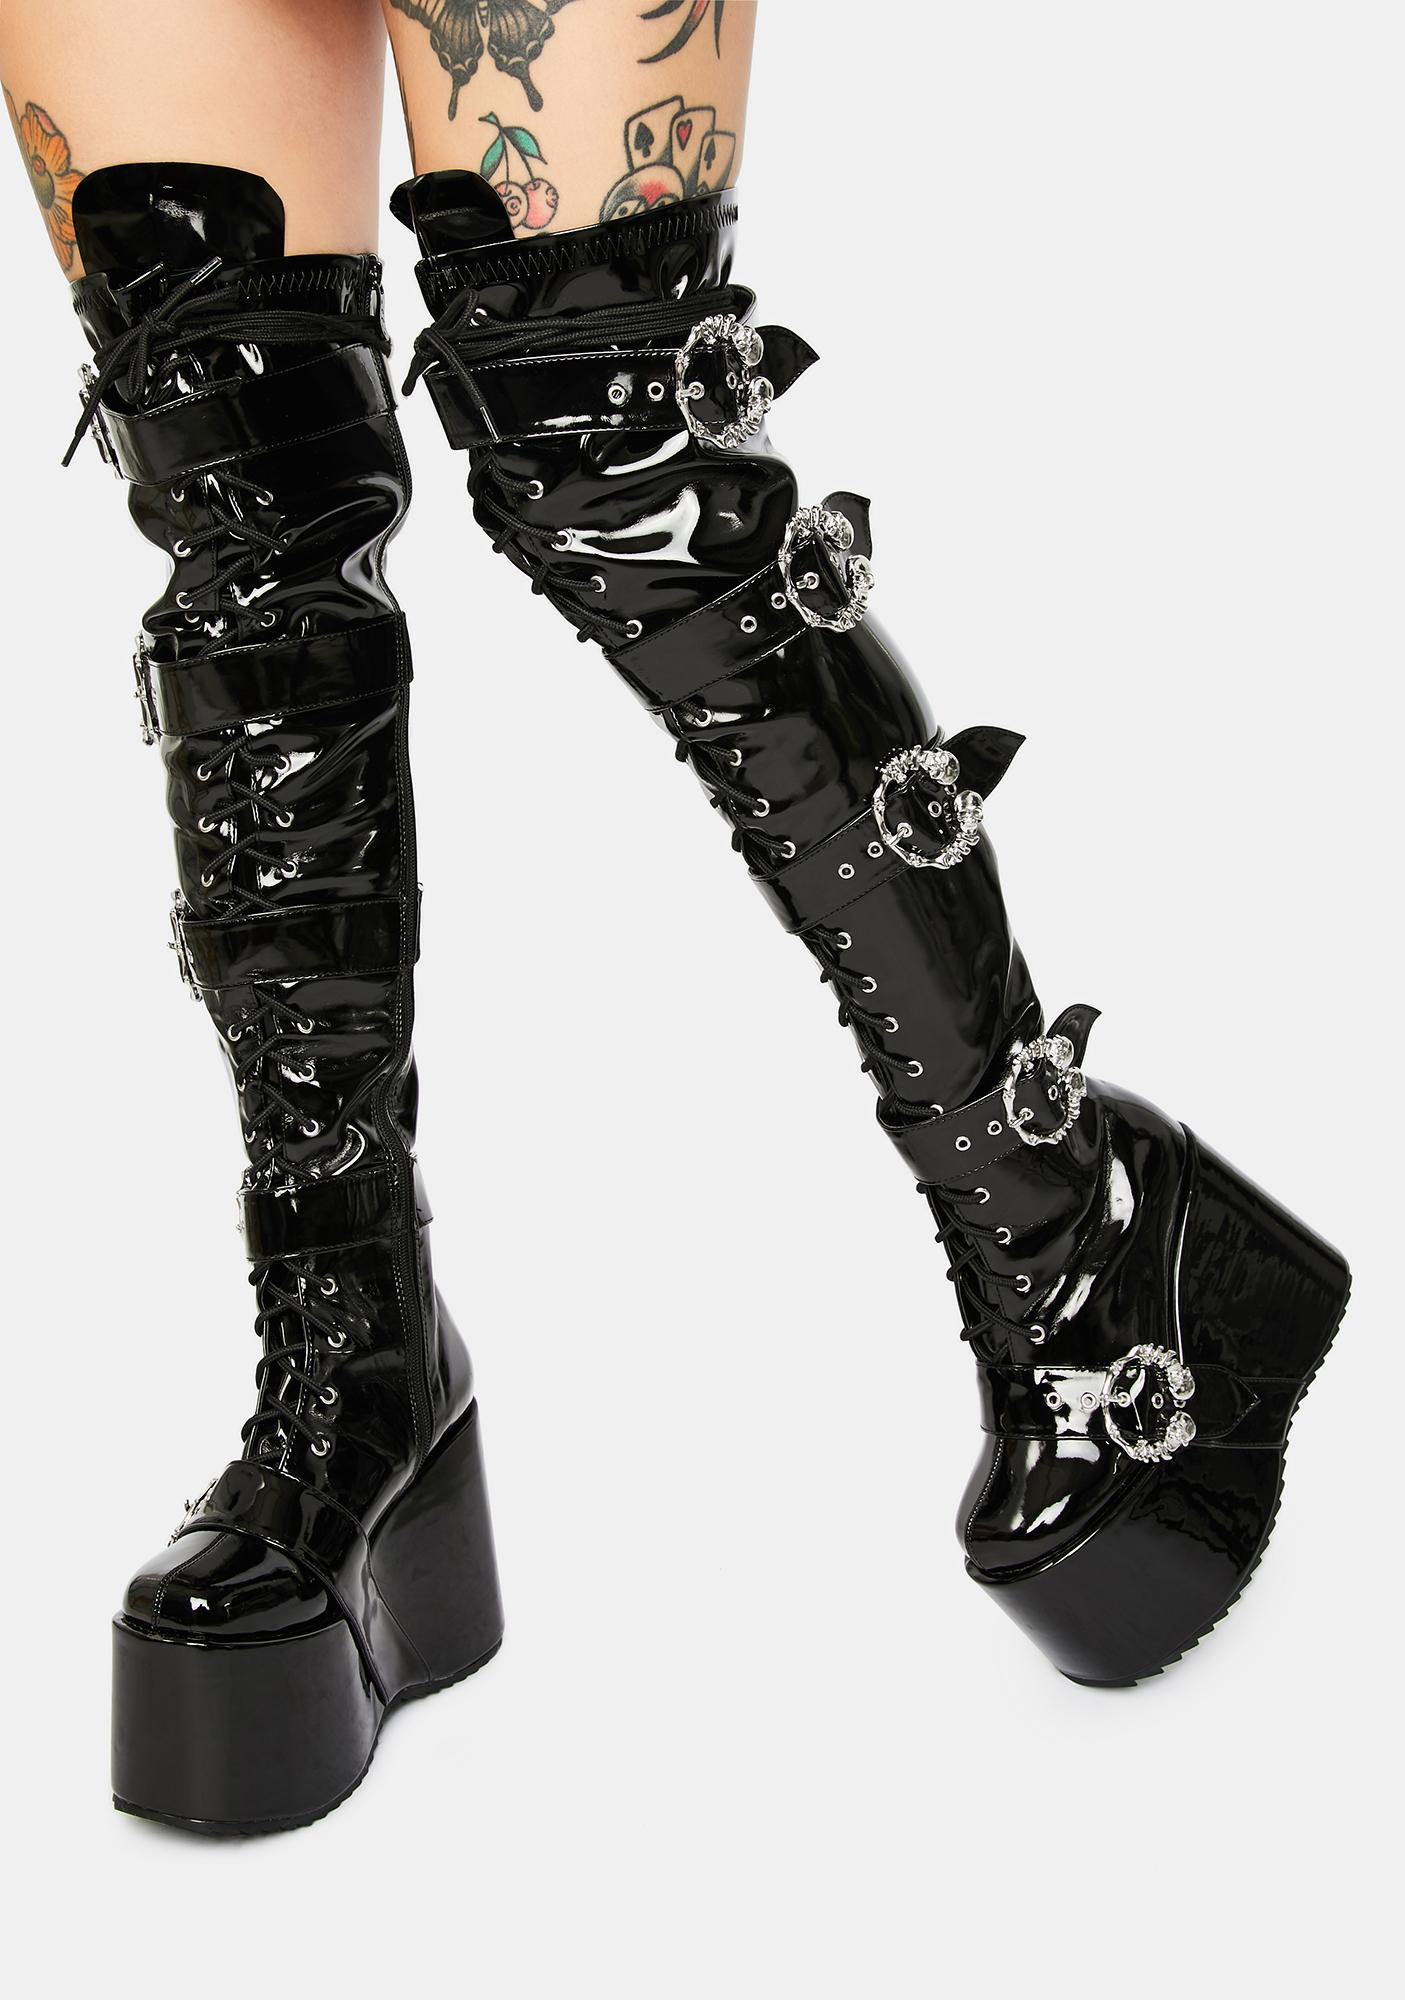 Chance At Romance Knee High Boots